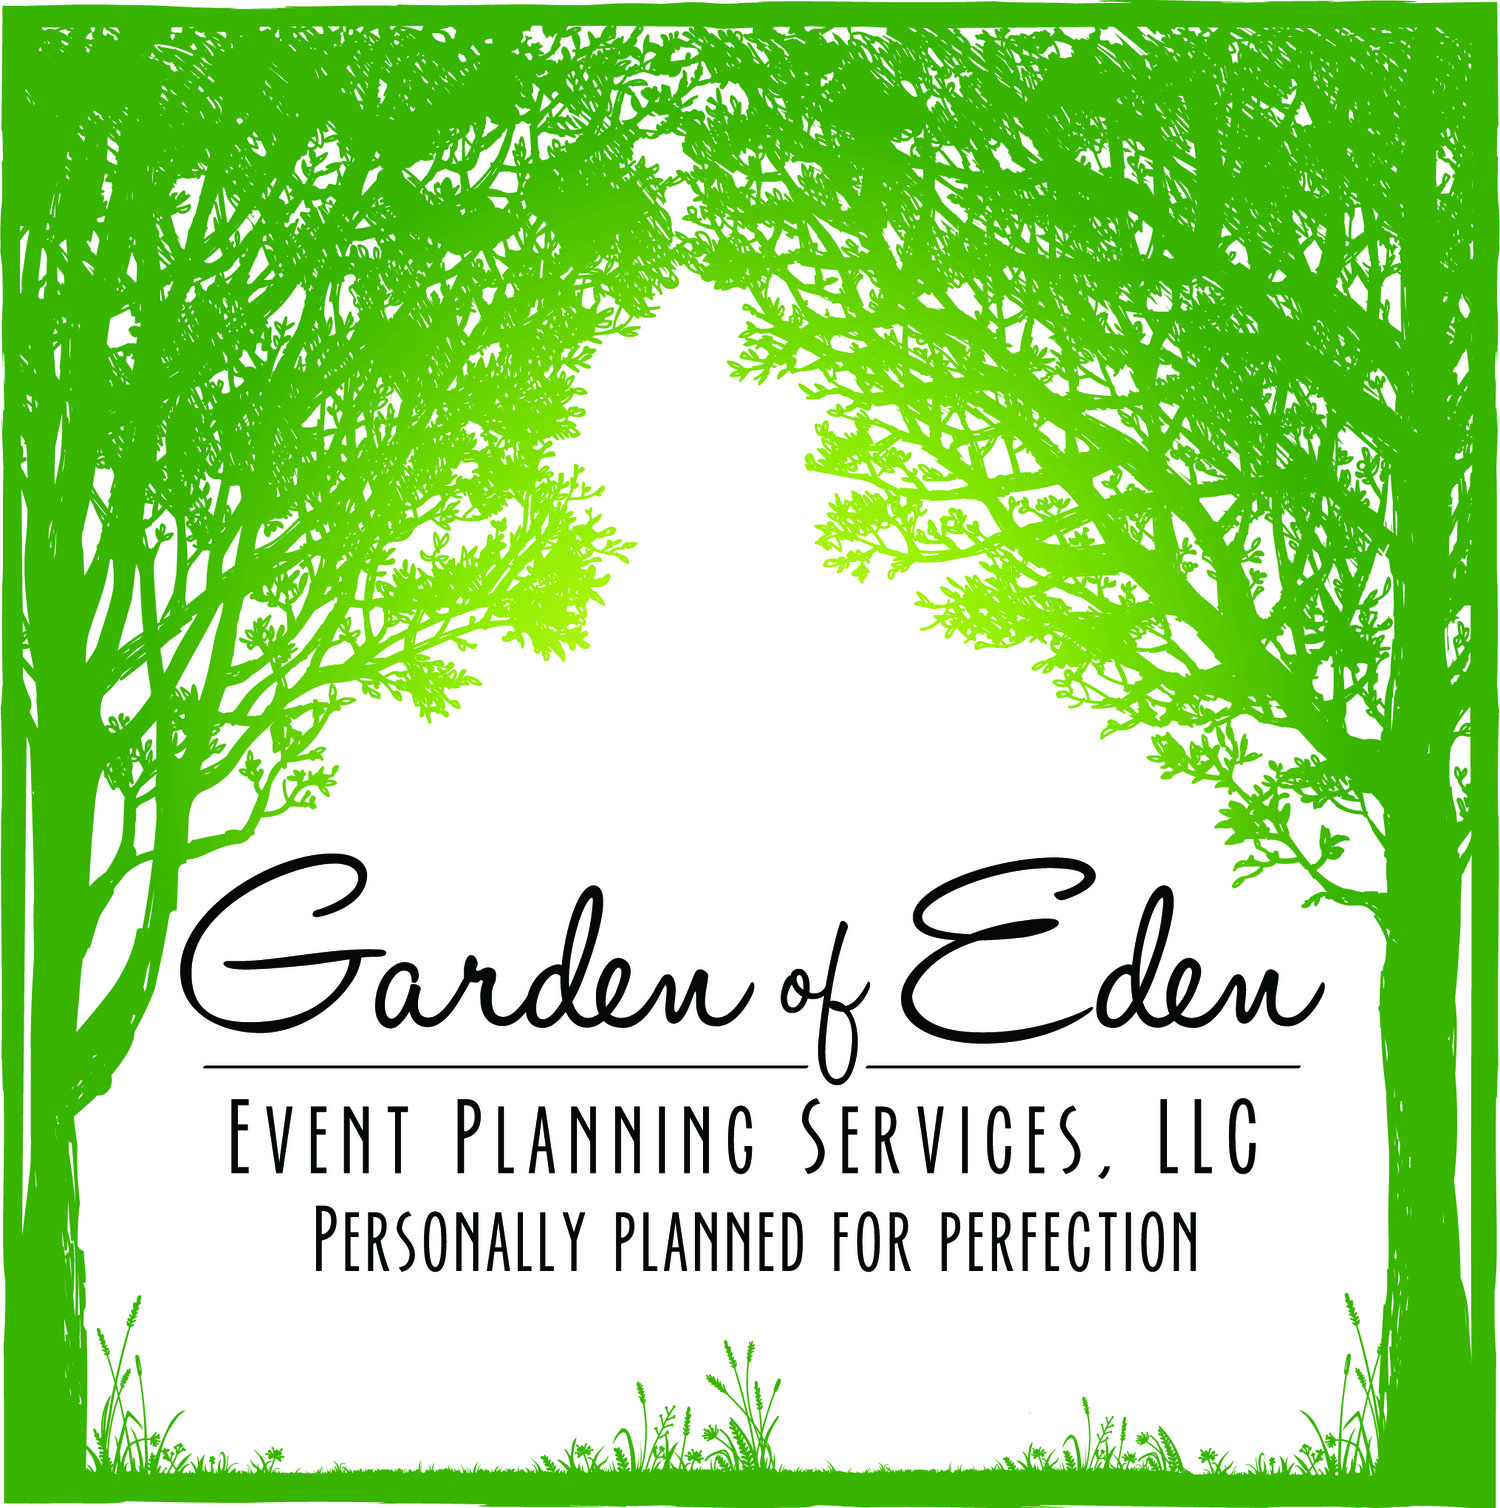 Garden of Eden Event Planning Services, LLC